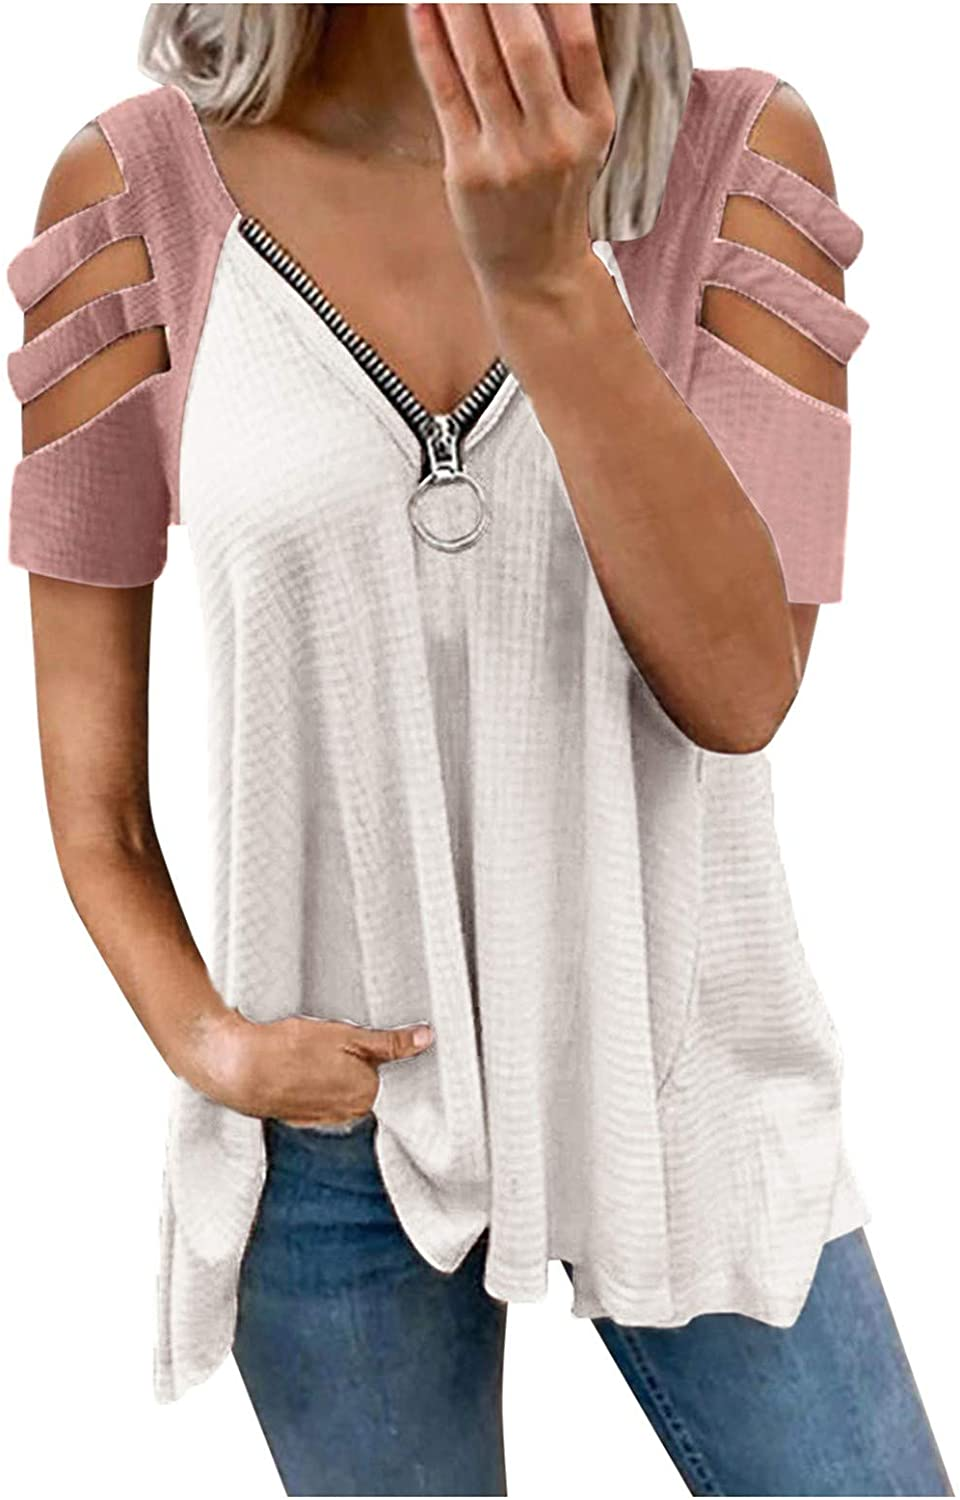 Tunic Tops for Women Casual Summer,Women's Cute Swiss Dot Casual Summer Tops Crewneck Short Sleeve Chiffon Blouses Solid Color Loose Fit Shirts Tees